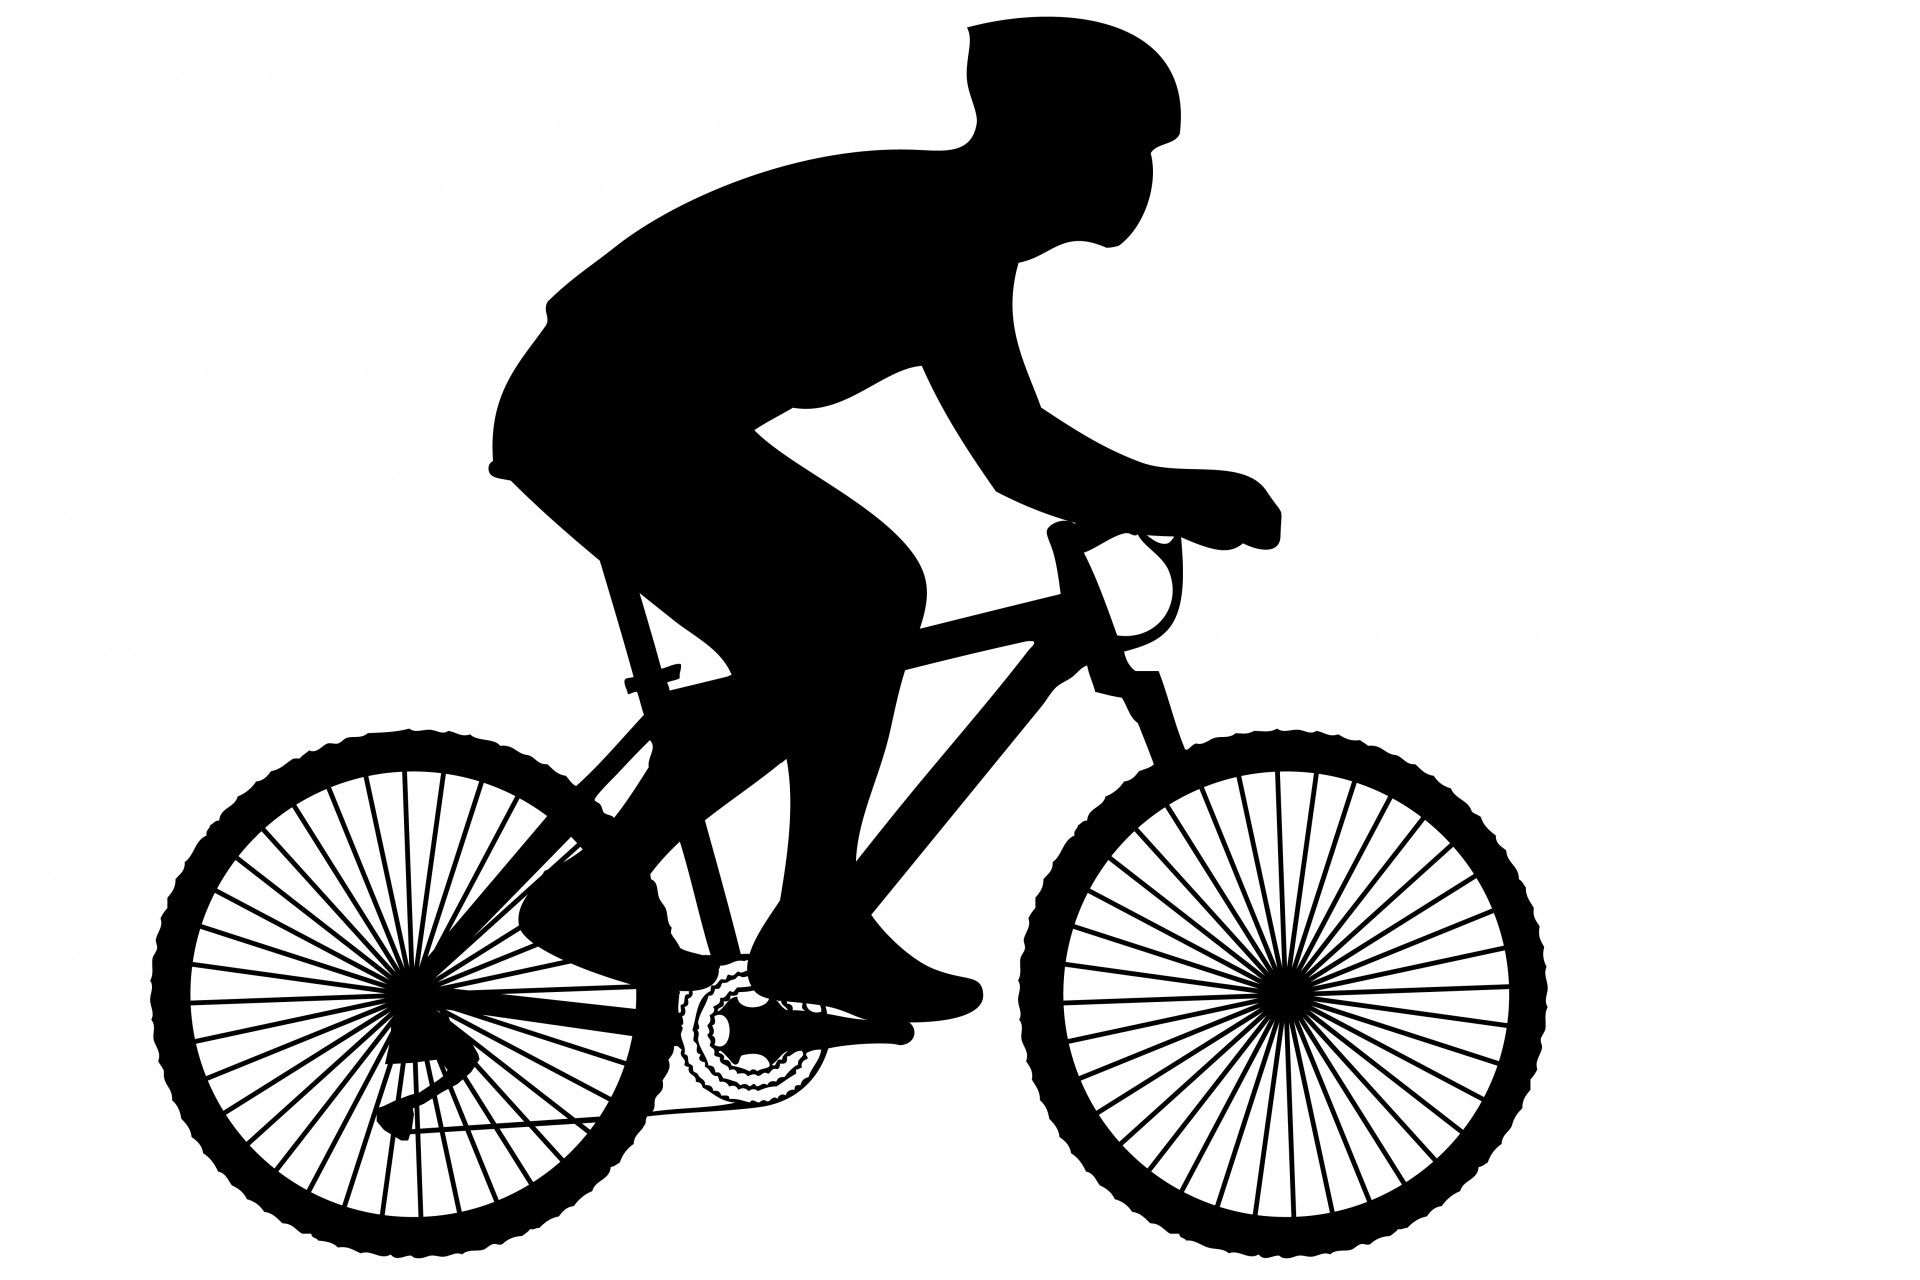 Bike clipart silhouette. Black of a cyclist